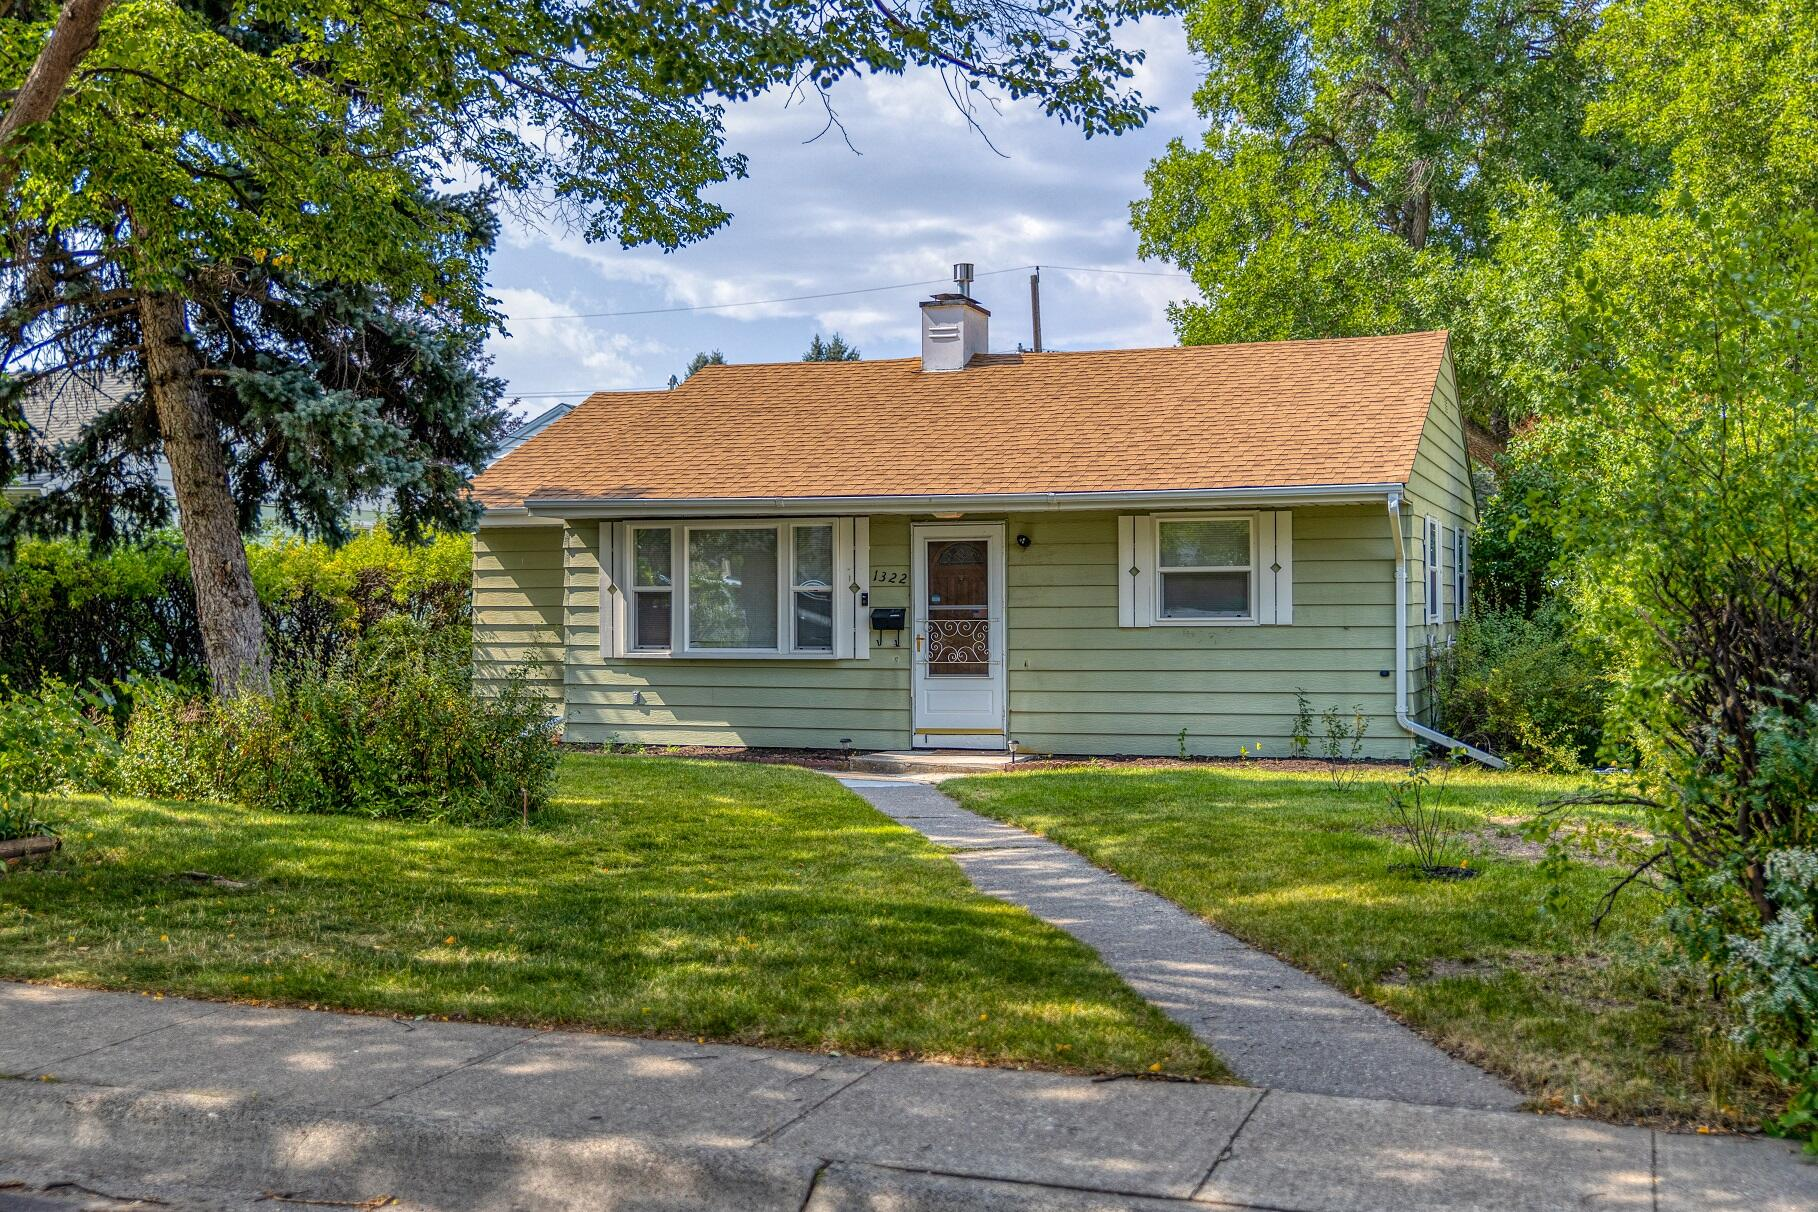 This cozy 2 bedroom home next to Sunnyside Park wont last long! With newer appliances, new texture and paint, newer flooring, newer windows, electrical updated to 200amp in the house and garage and A/C this home is move-in ready. The property features mature landscaping and shade trees. The back yard is fully fenced with a raised garden bed, blueberry bushes, raspberries and RV parking.